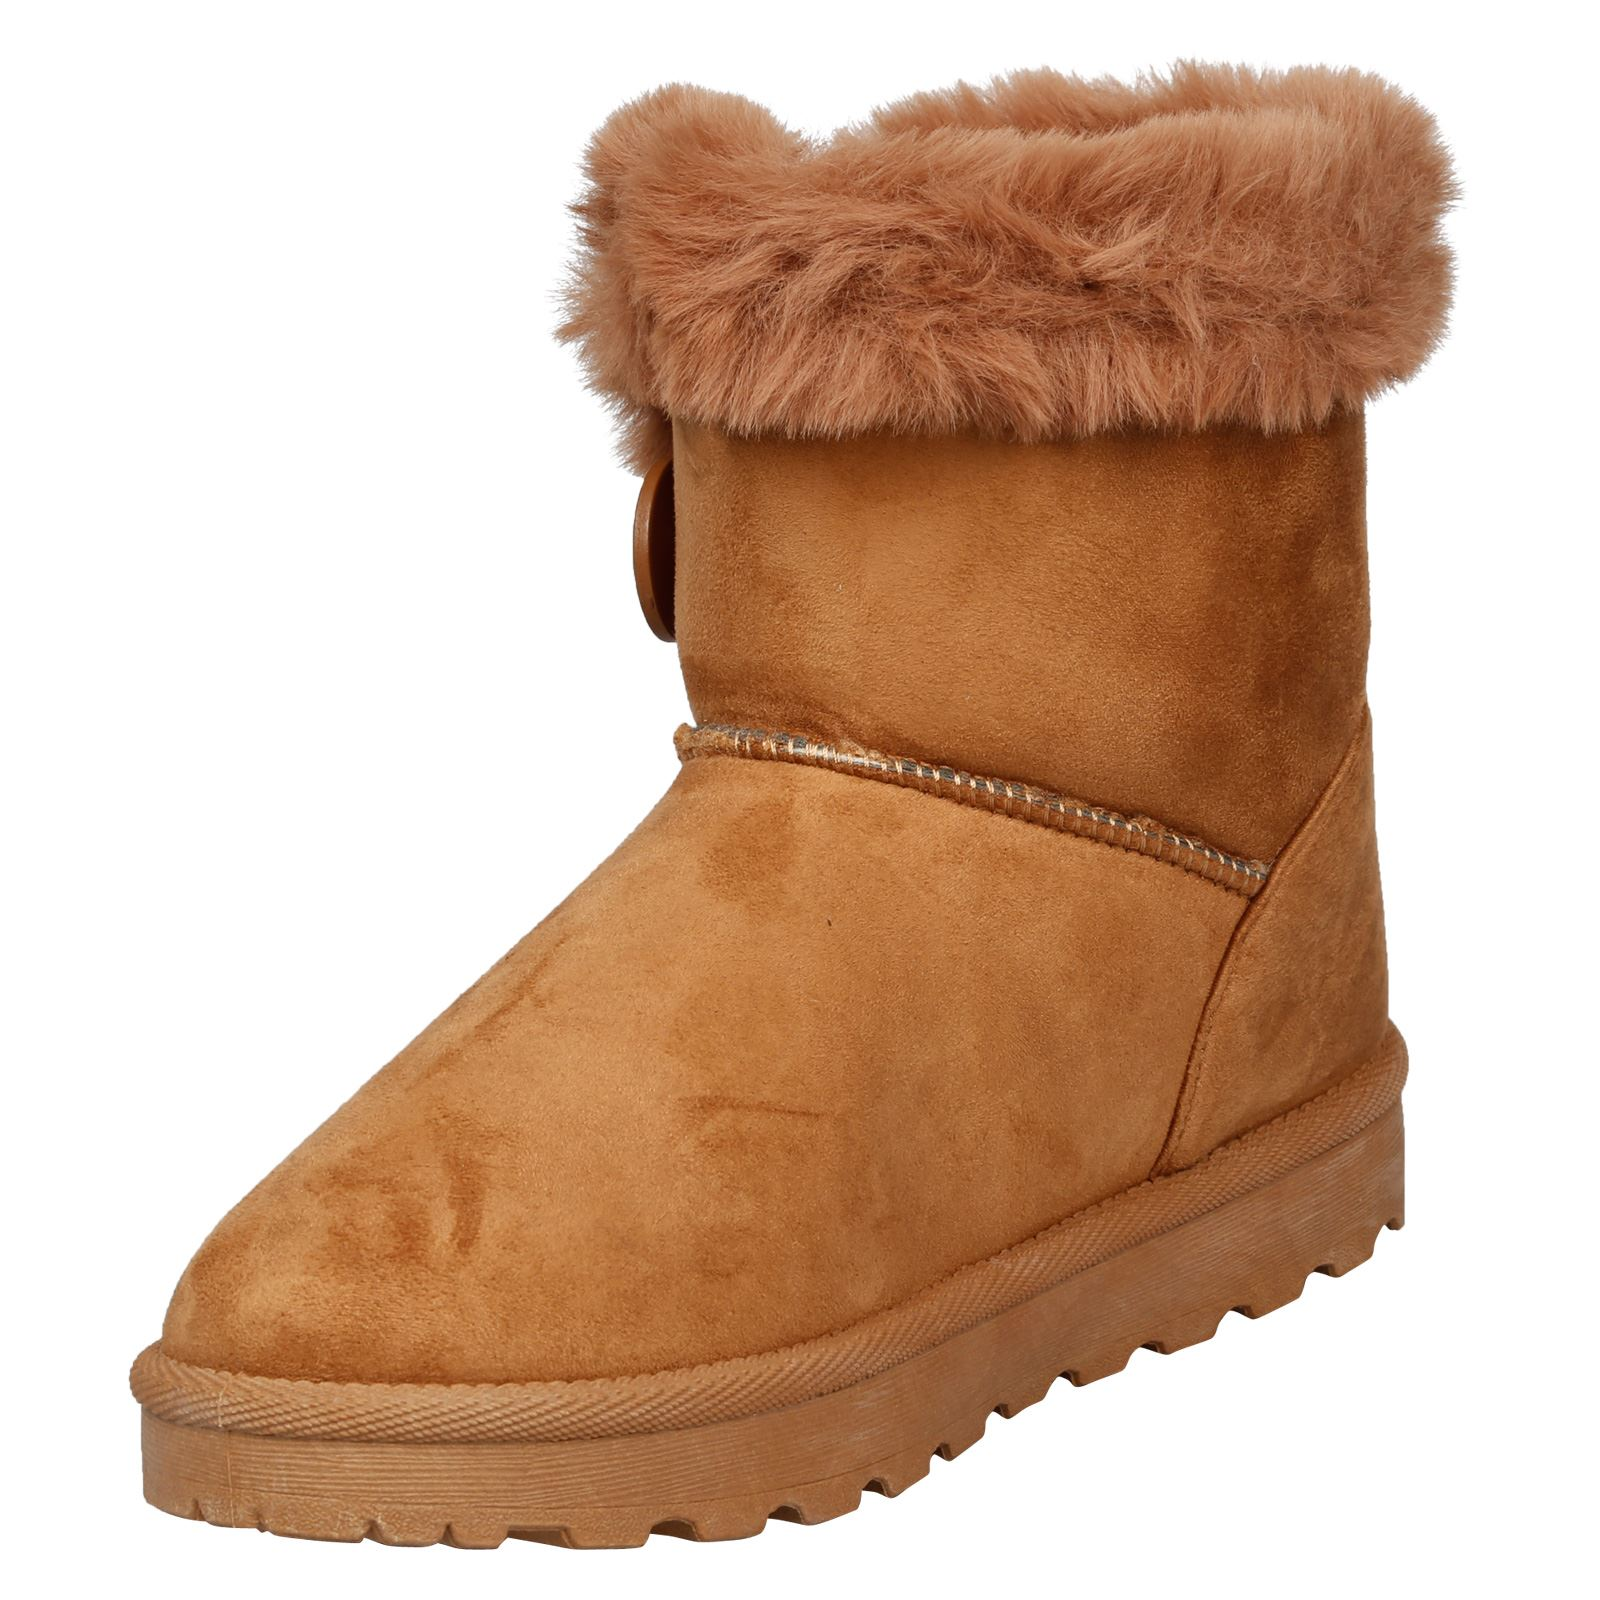 Eliana-Womens-Flatform-Fur-Lined-Flat-Snow-Ankle-Boots-Casual-Ladies-Size-Style thumbnail 8